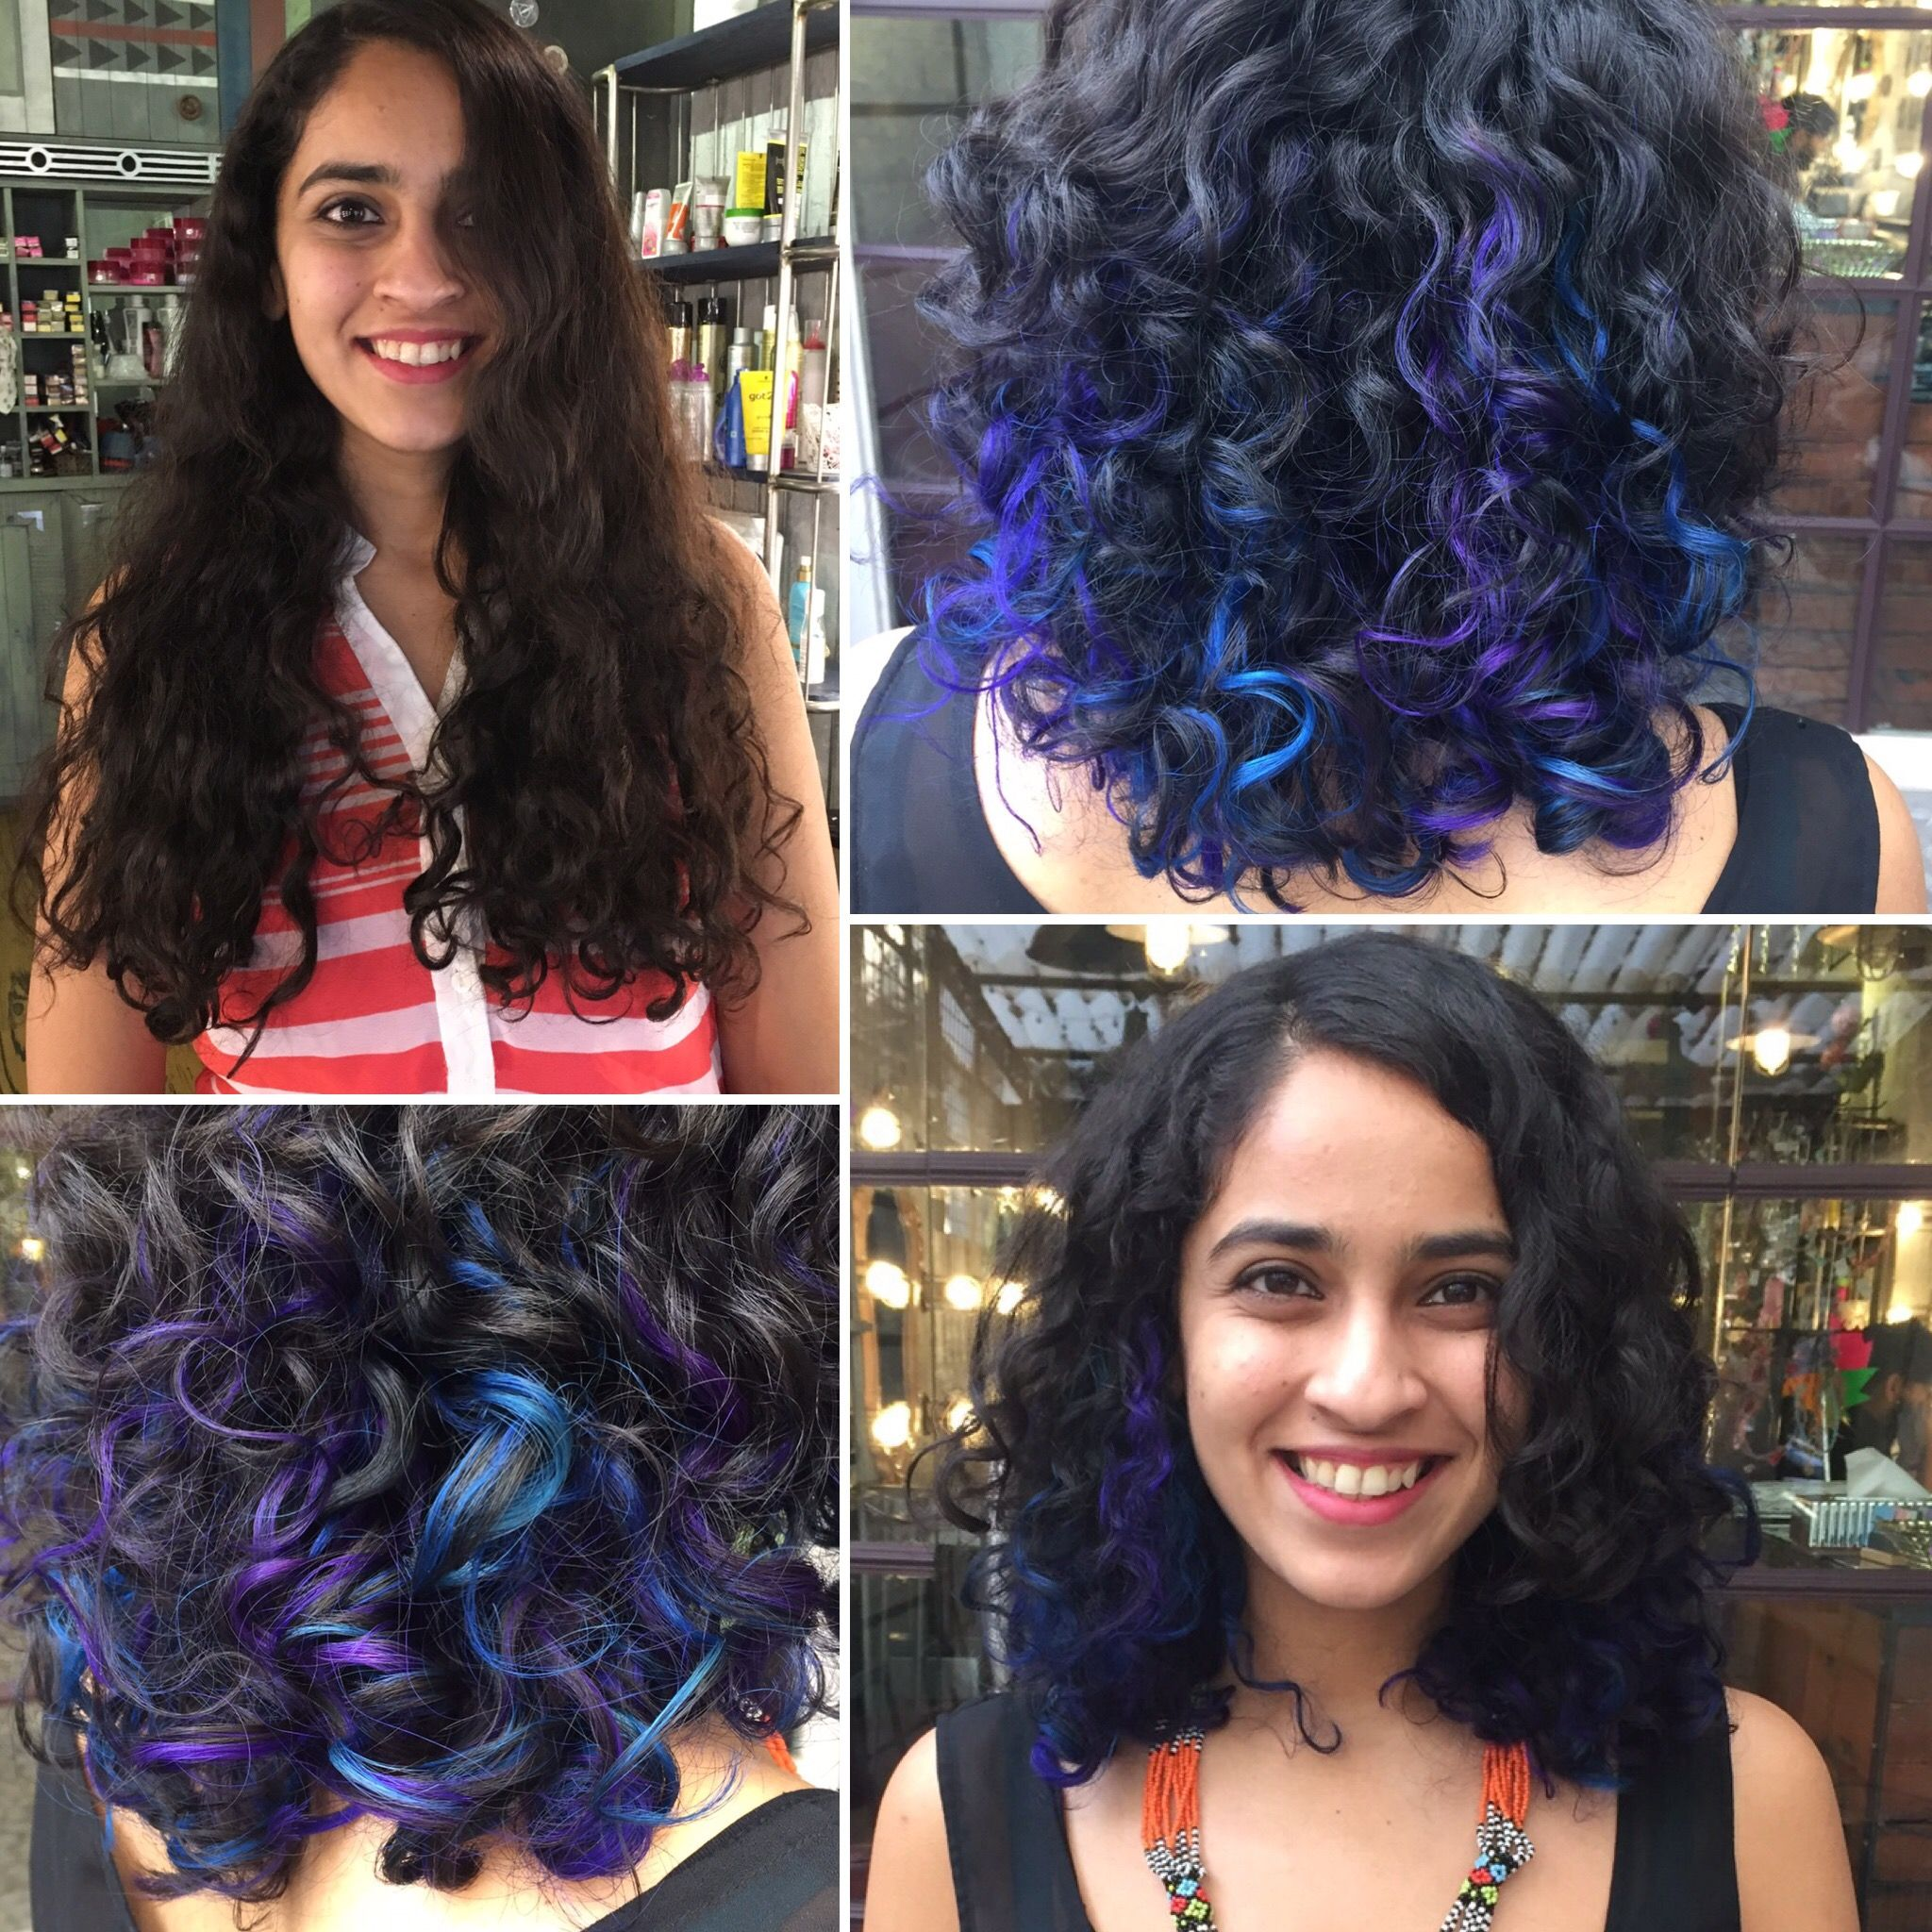 Before And After Blue And Purple Peak A Boo Highlights Blue Purple Hair Highlights Curlyhair Colourforc Hair Color For Black Hair Dyed Hair Hair Beauty